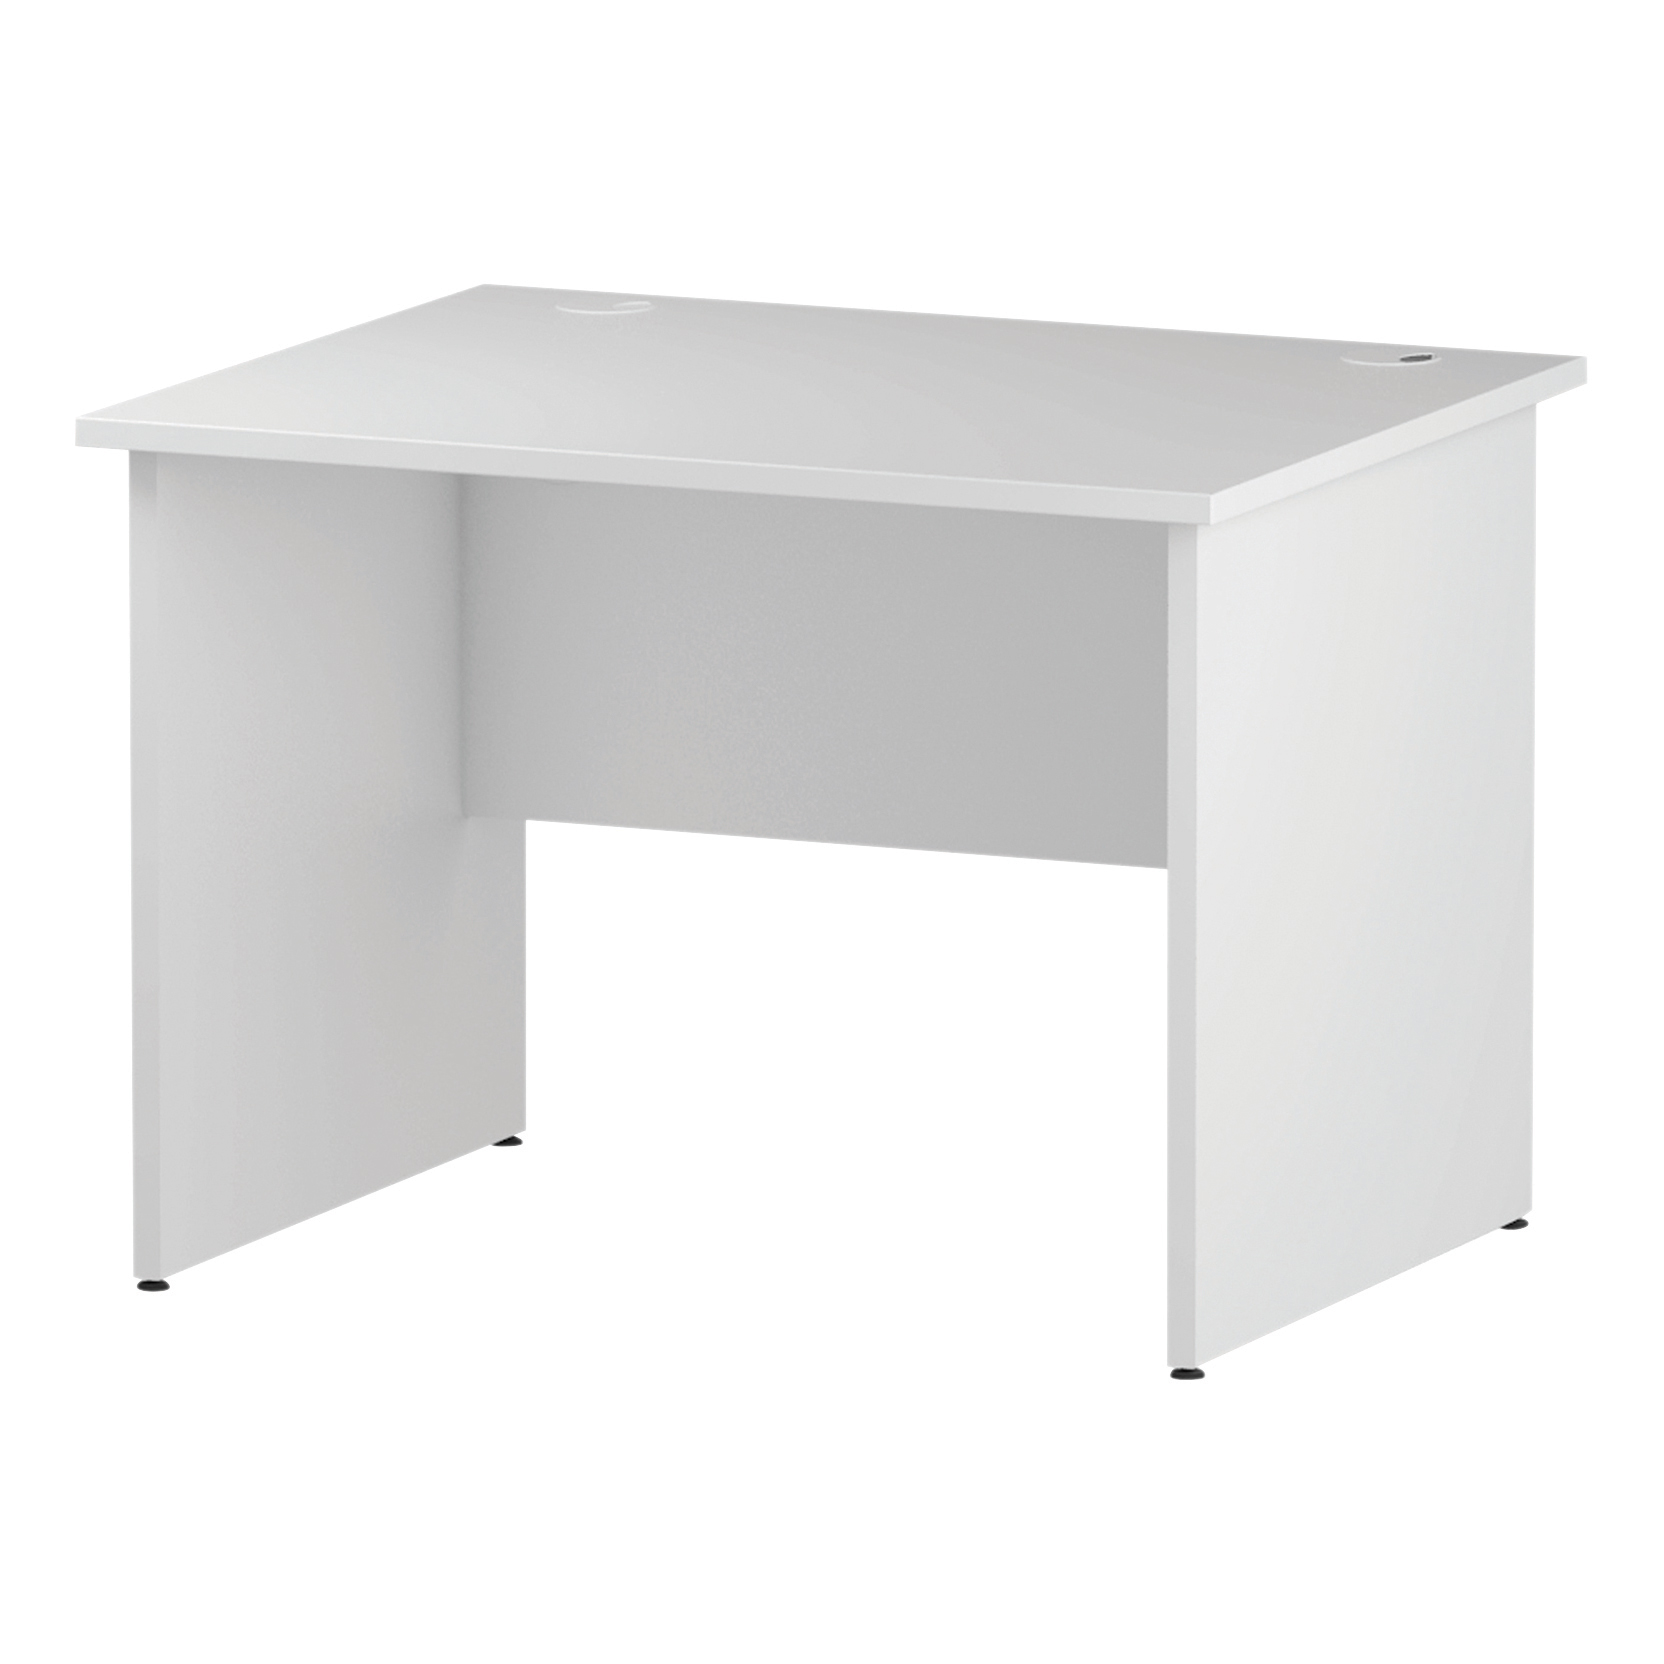 Trexus Rectangular Desk Panel End Leg 1000x800mm White Ref I000392